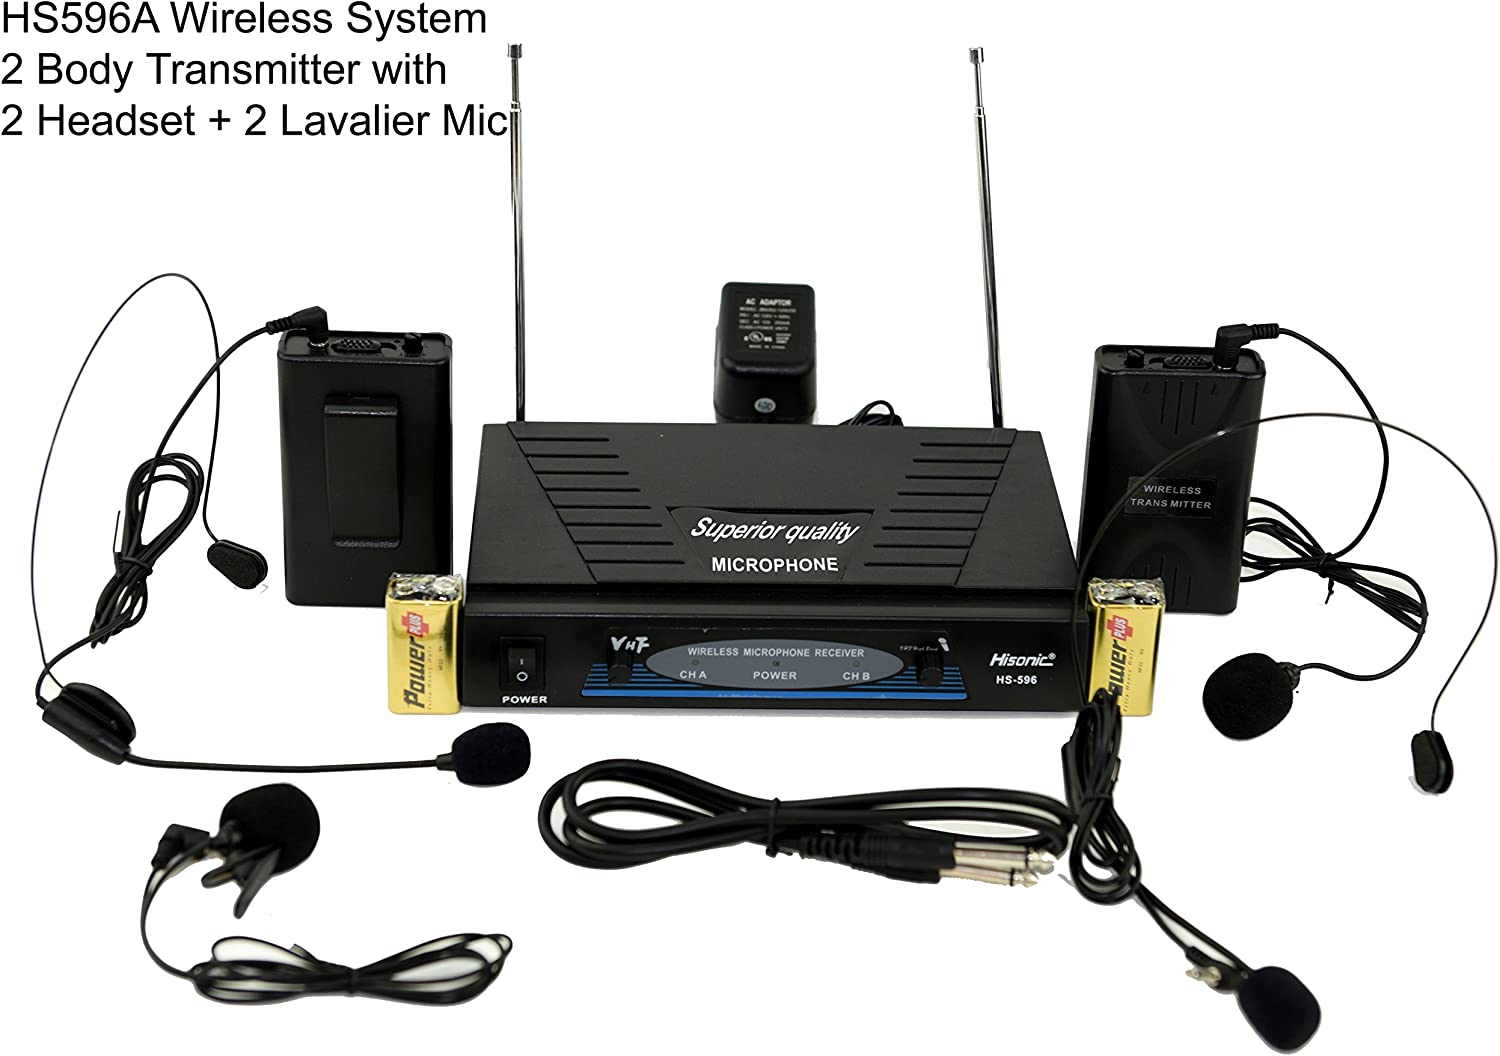 Hisonic Hs596A Dual Channel Wireless Microphone System With 2 Headsets & 2 Lapel Microphones, Vhf And Fcc Ceritified